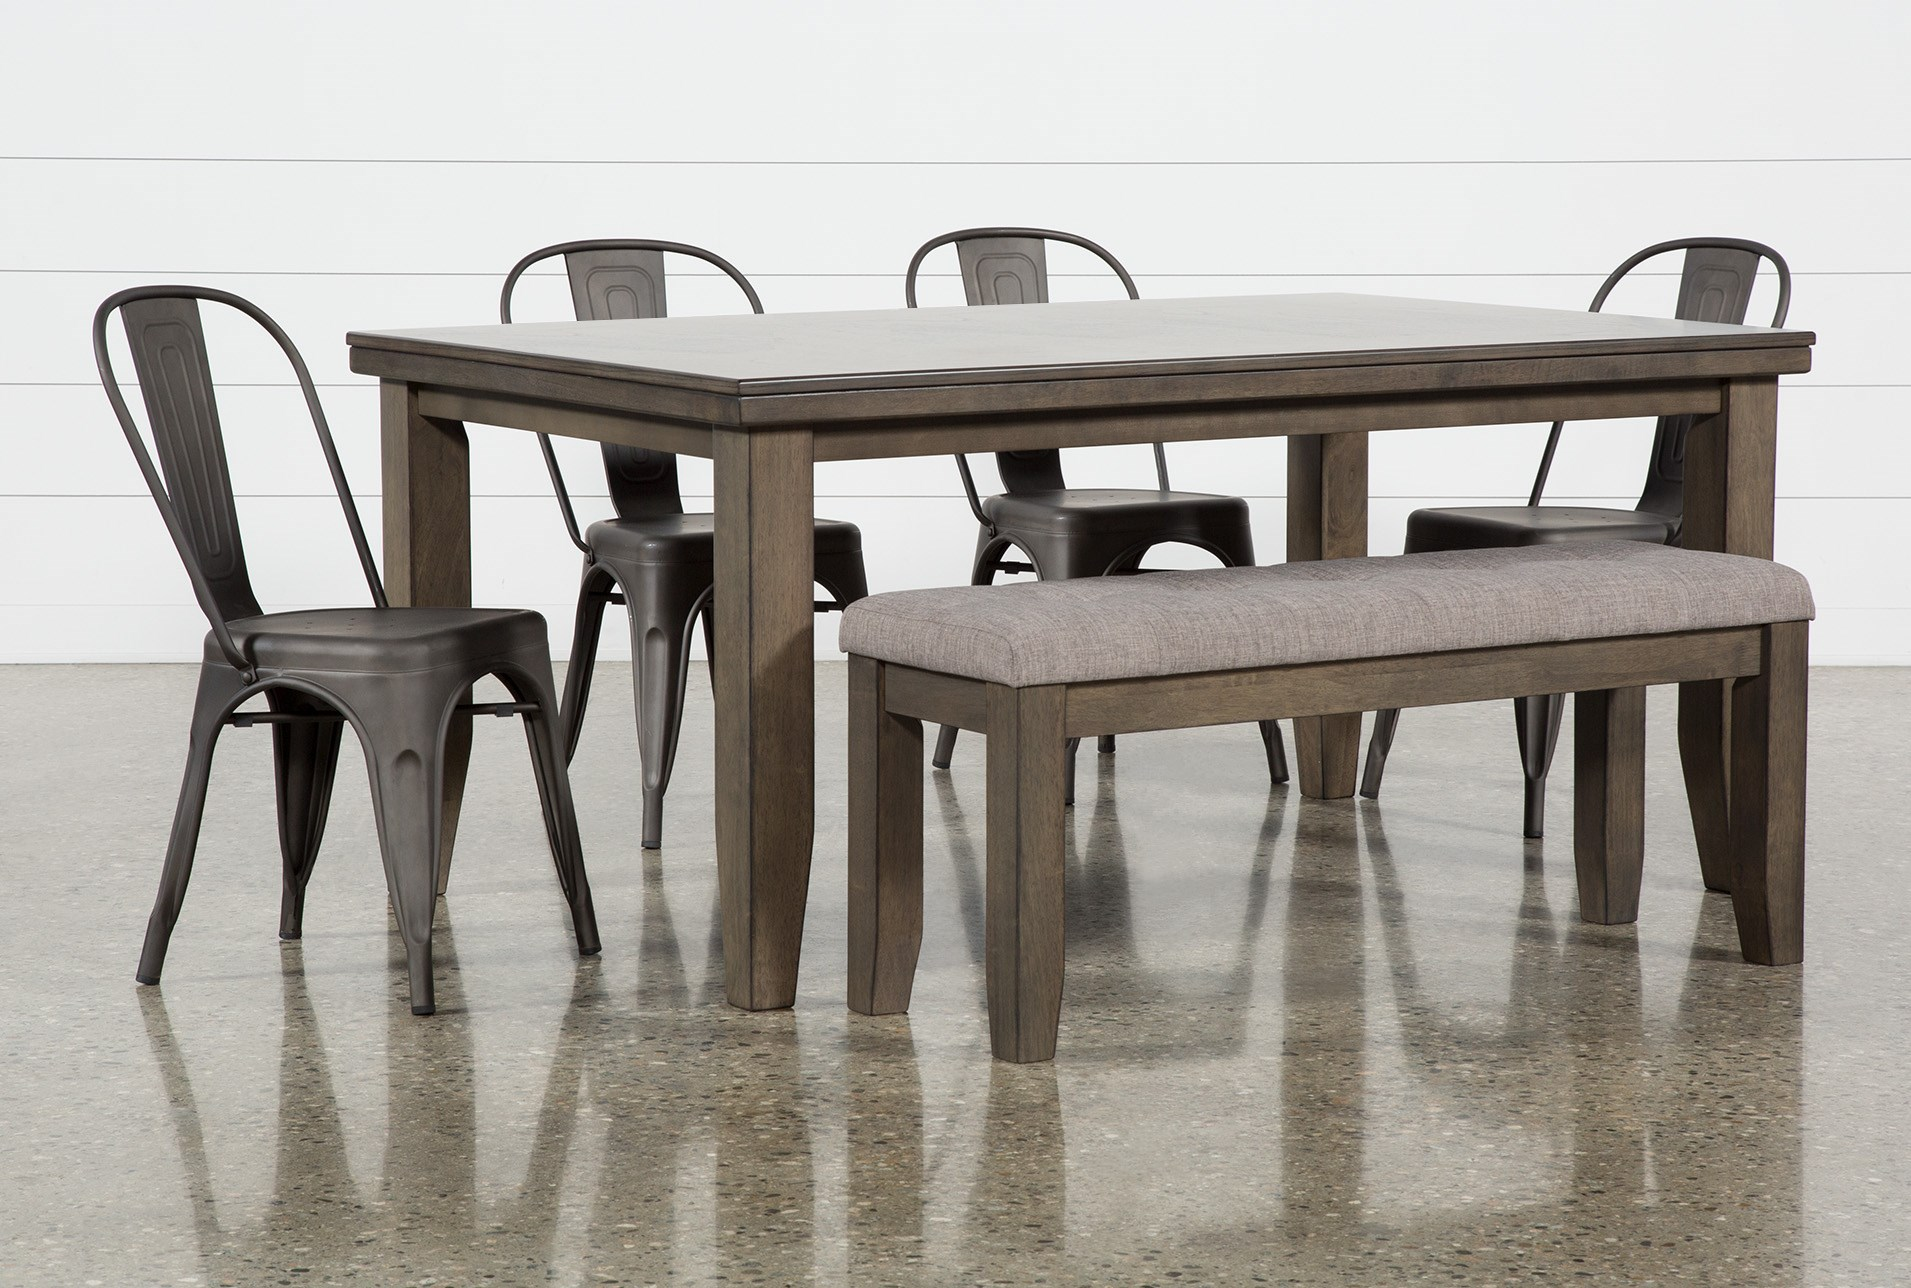 806ae49e0a Ashford II 6 Piece Dining Set With Delta Bronze Chairs (Qty: 1) has been  successfully added to your Cart.